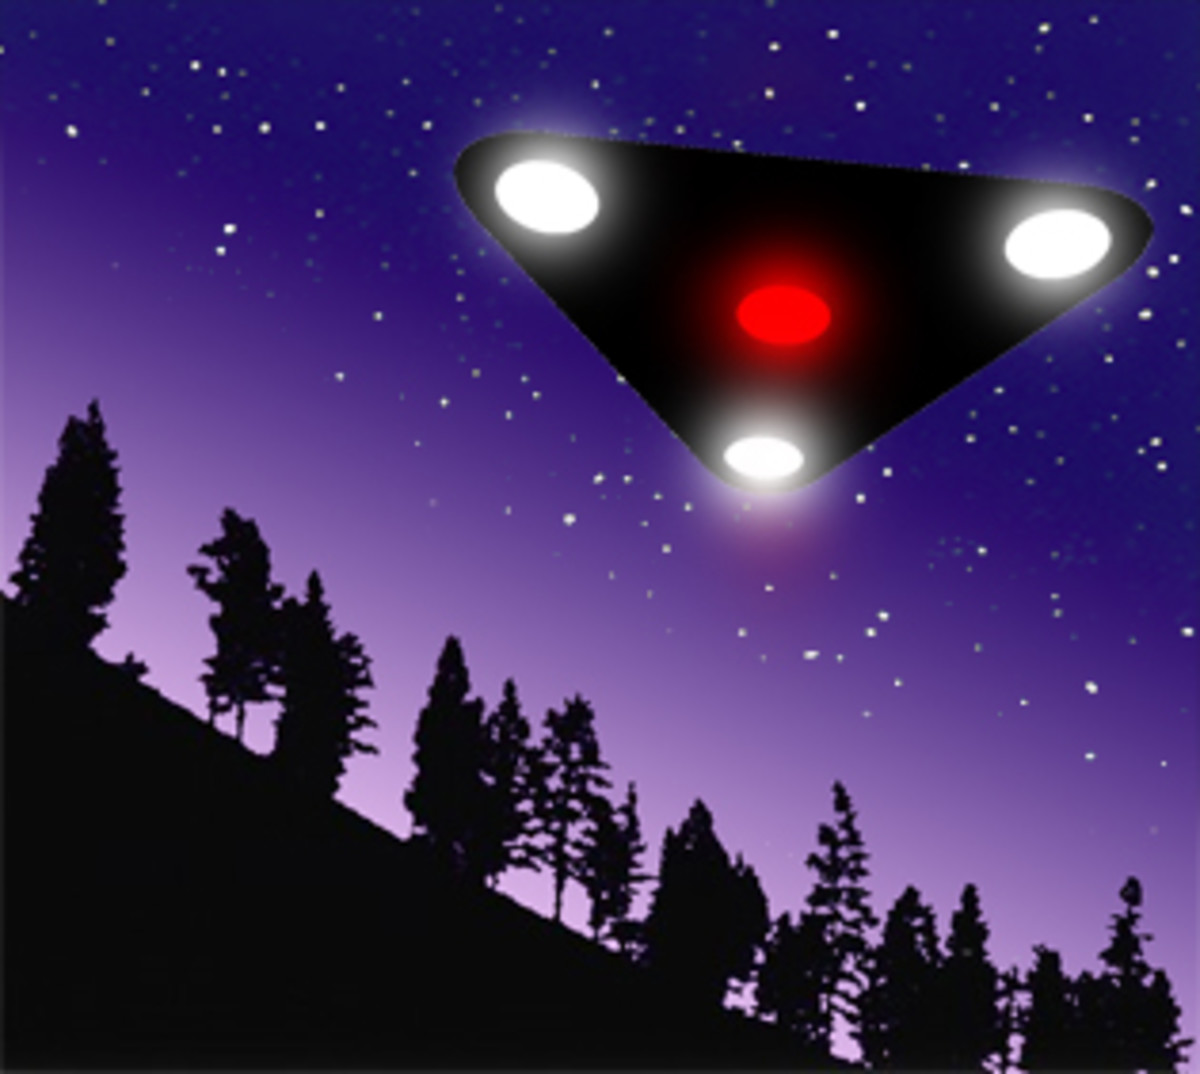 Should the Government Allow Full Disclosure of UFO Information?